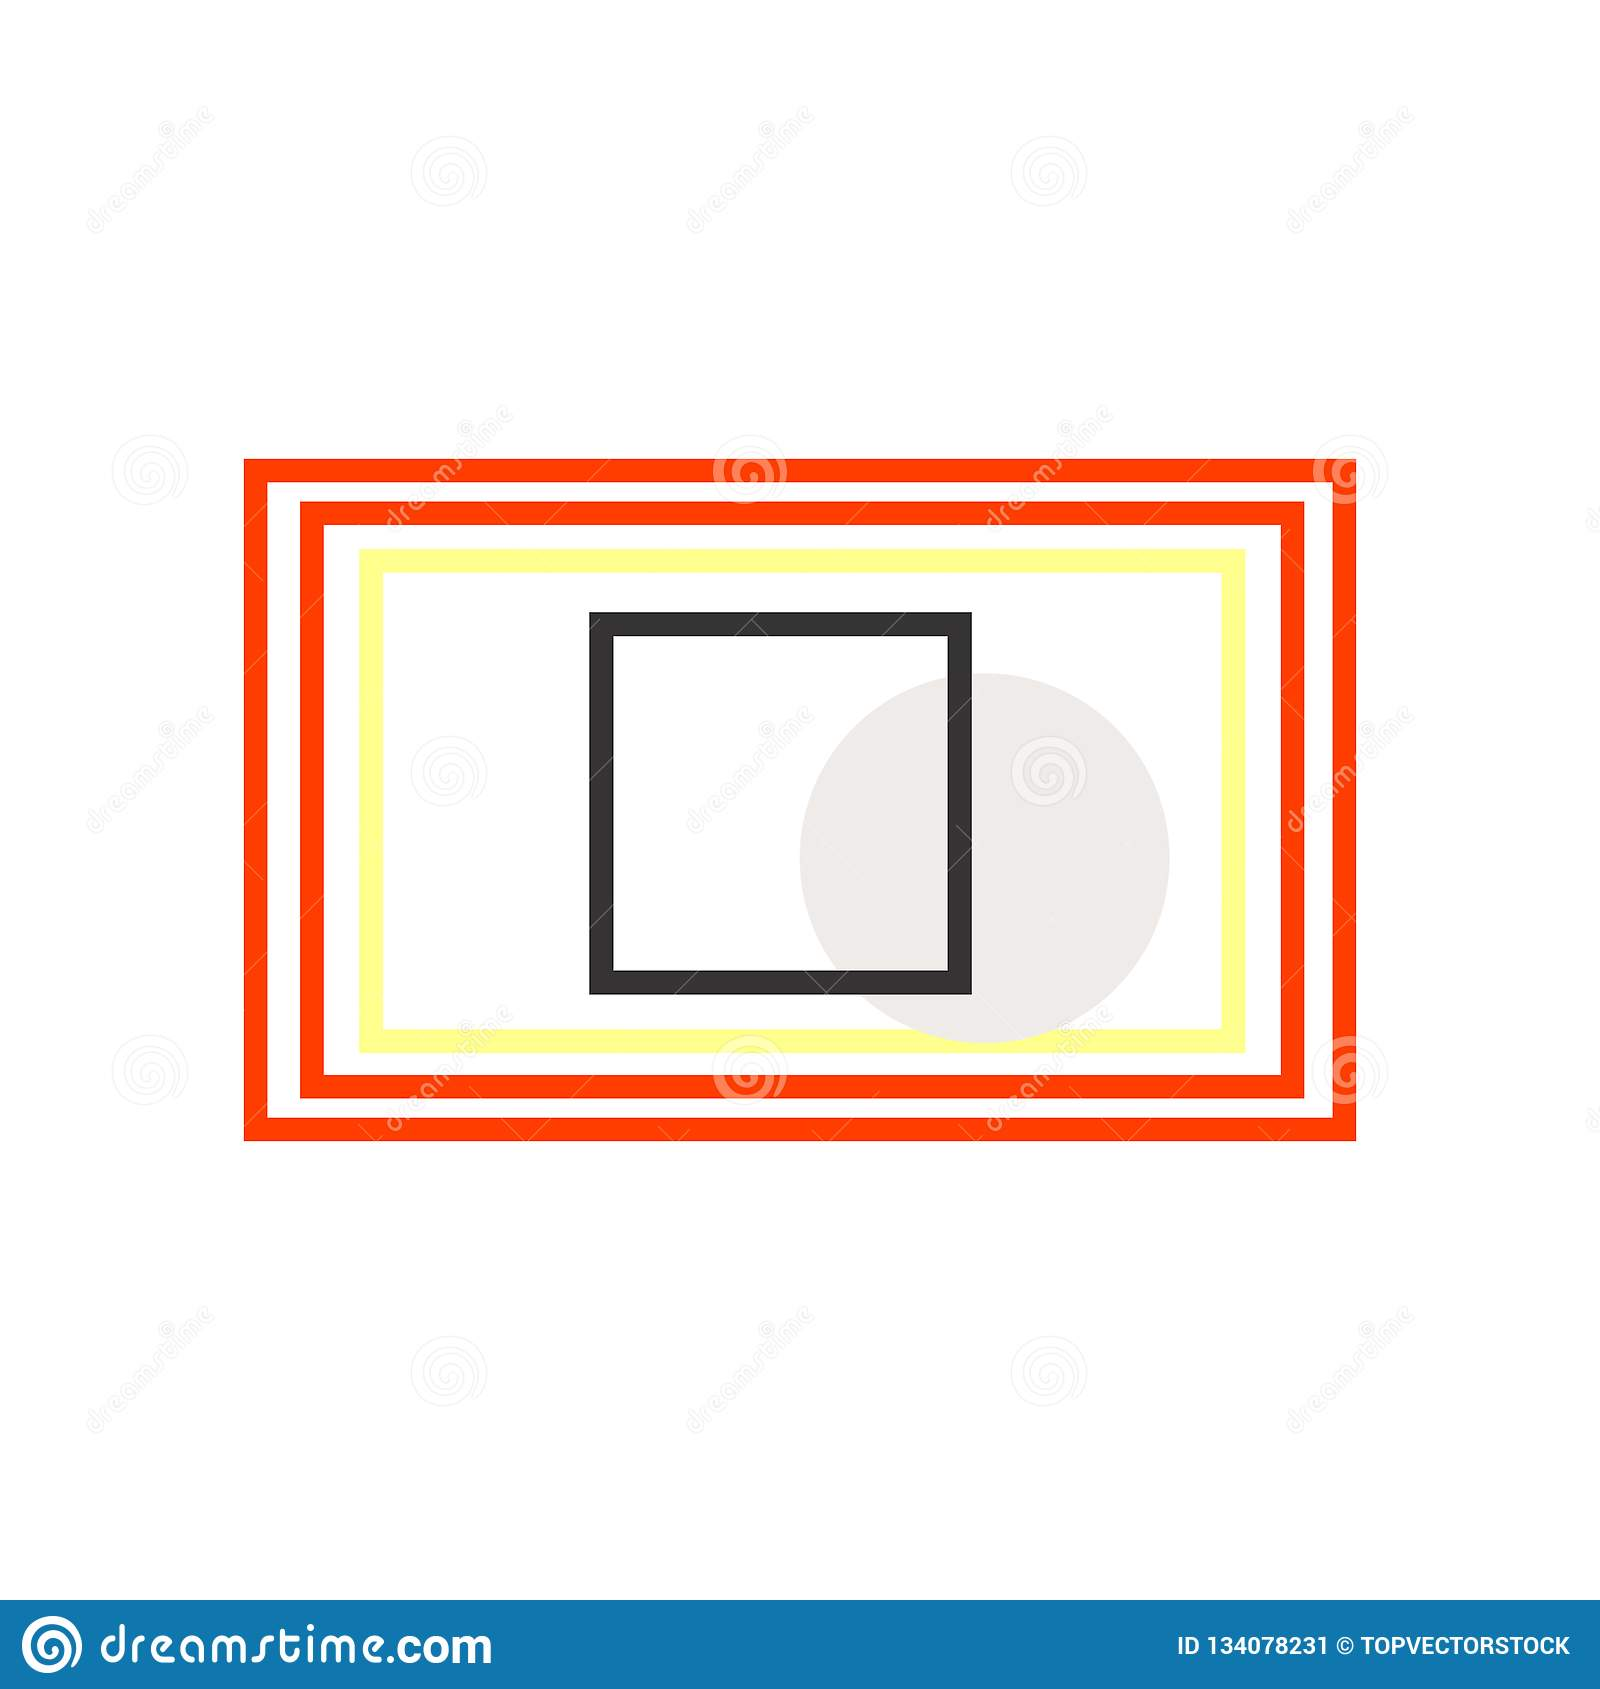 Rectangular icon vector sign and symbol isolated on white background, Rectangular logo concept